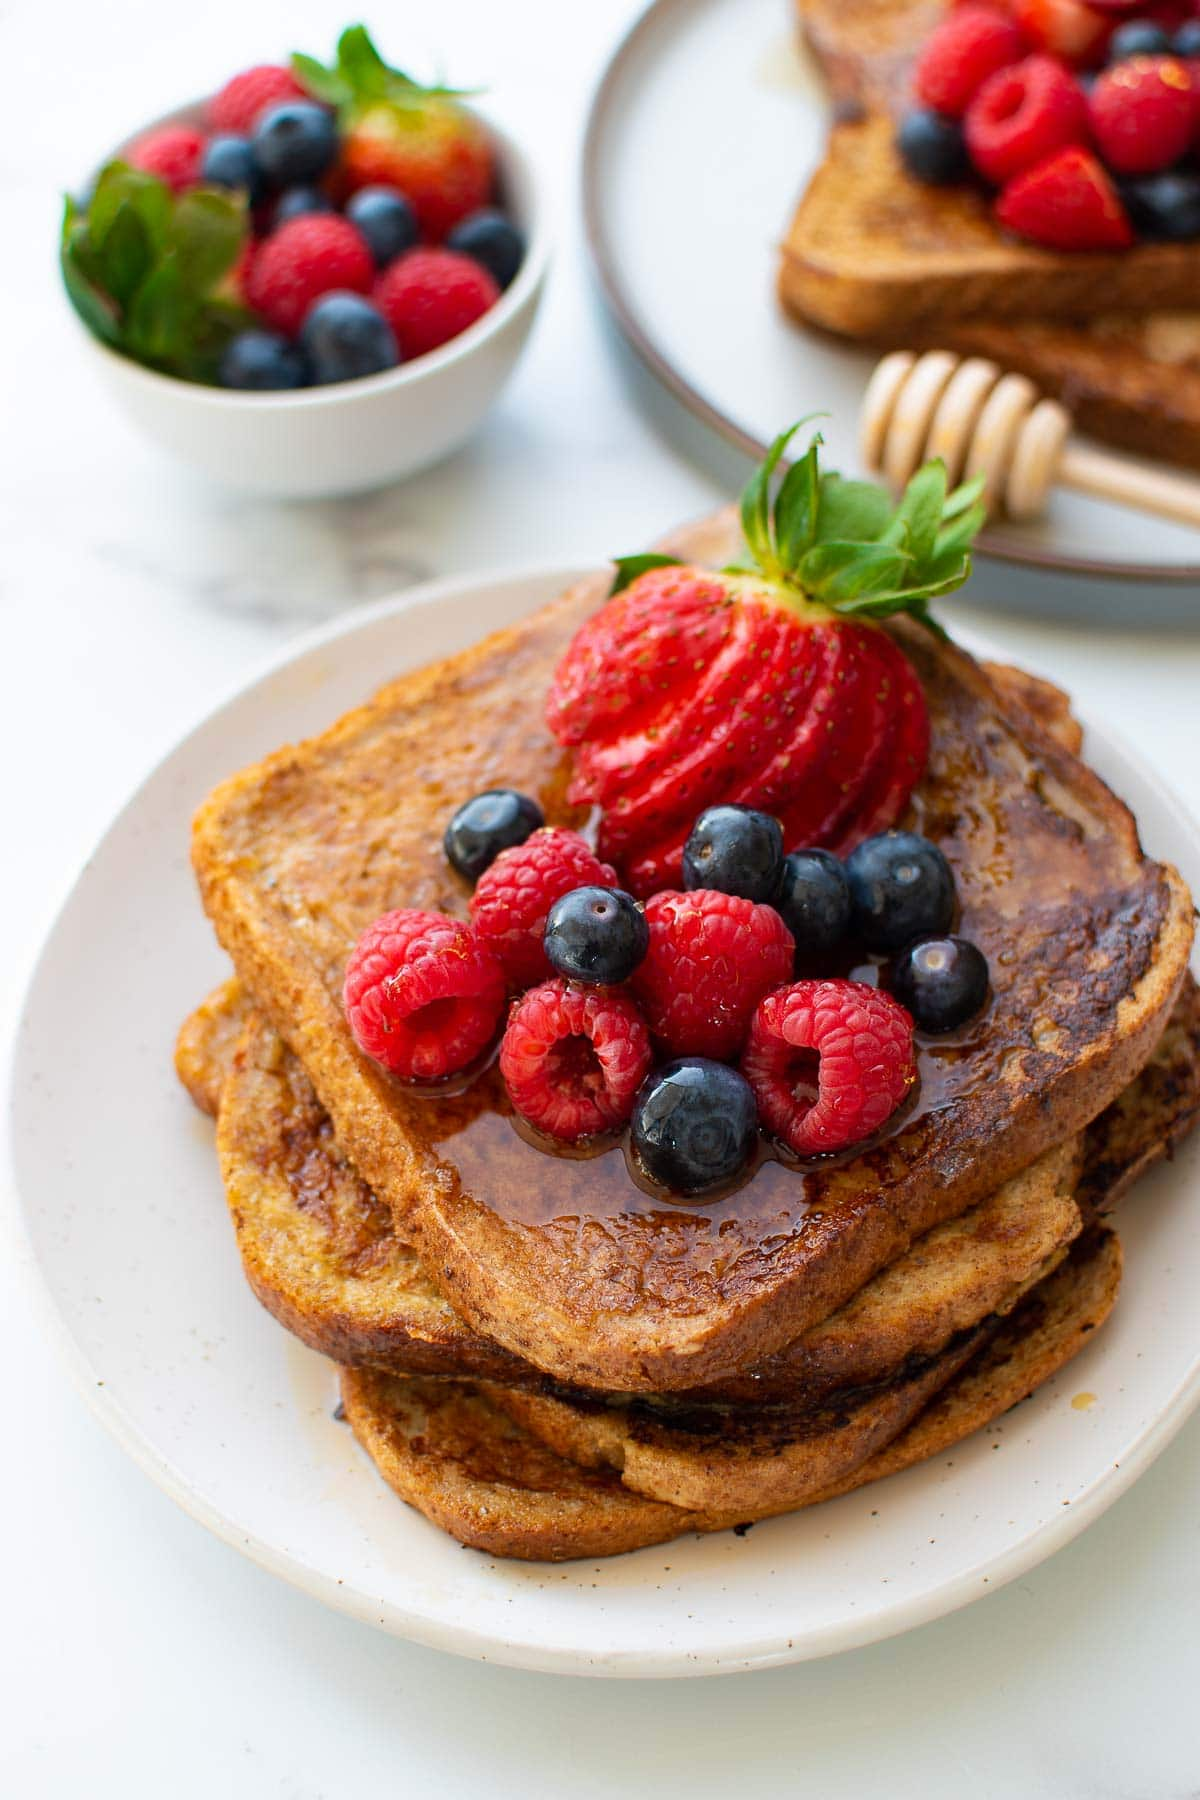 Dairy free French toast with maple syrup.